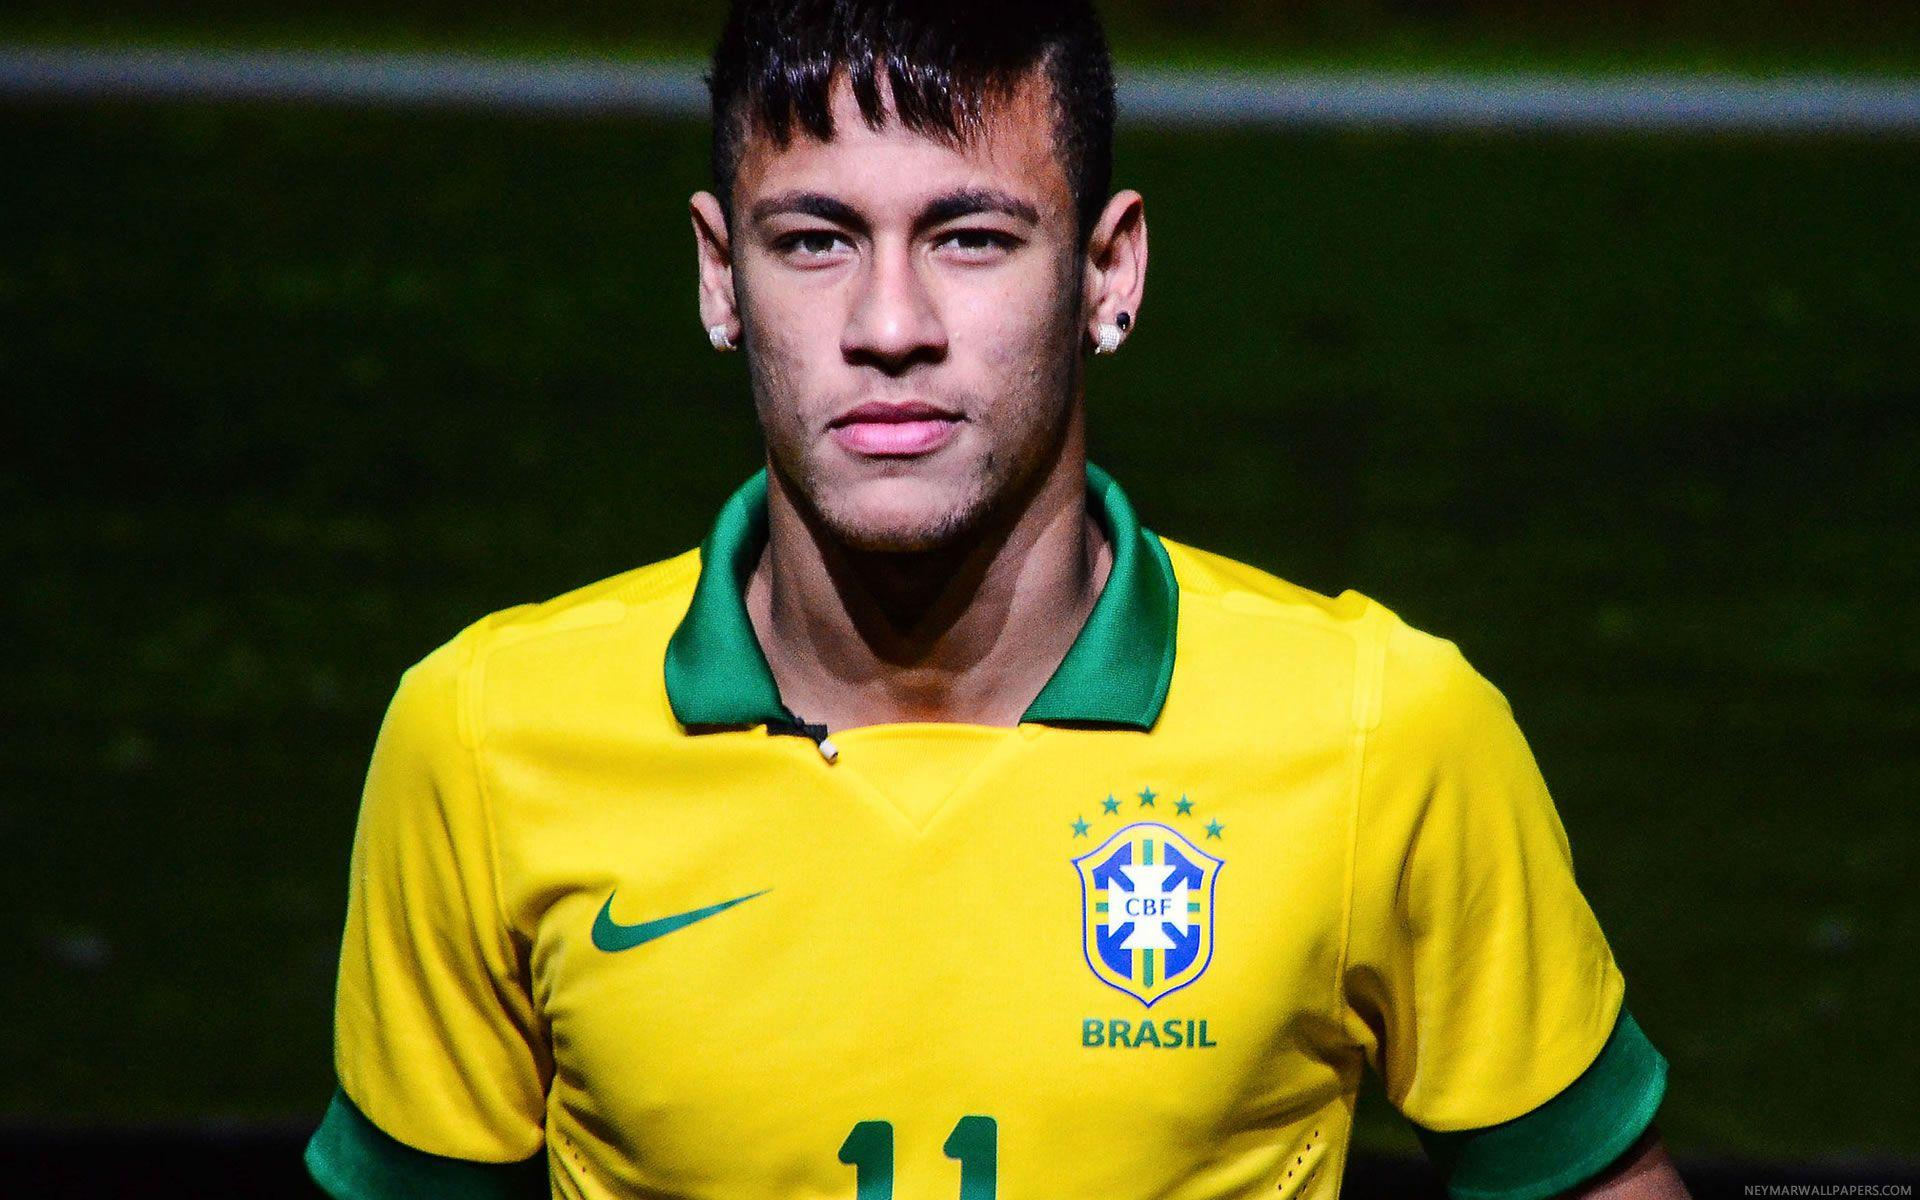 Neymar Brazil - Neymar Wallpapers